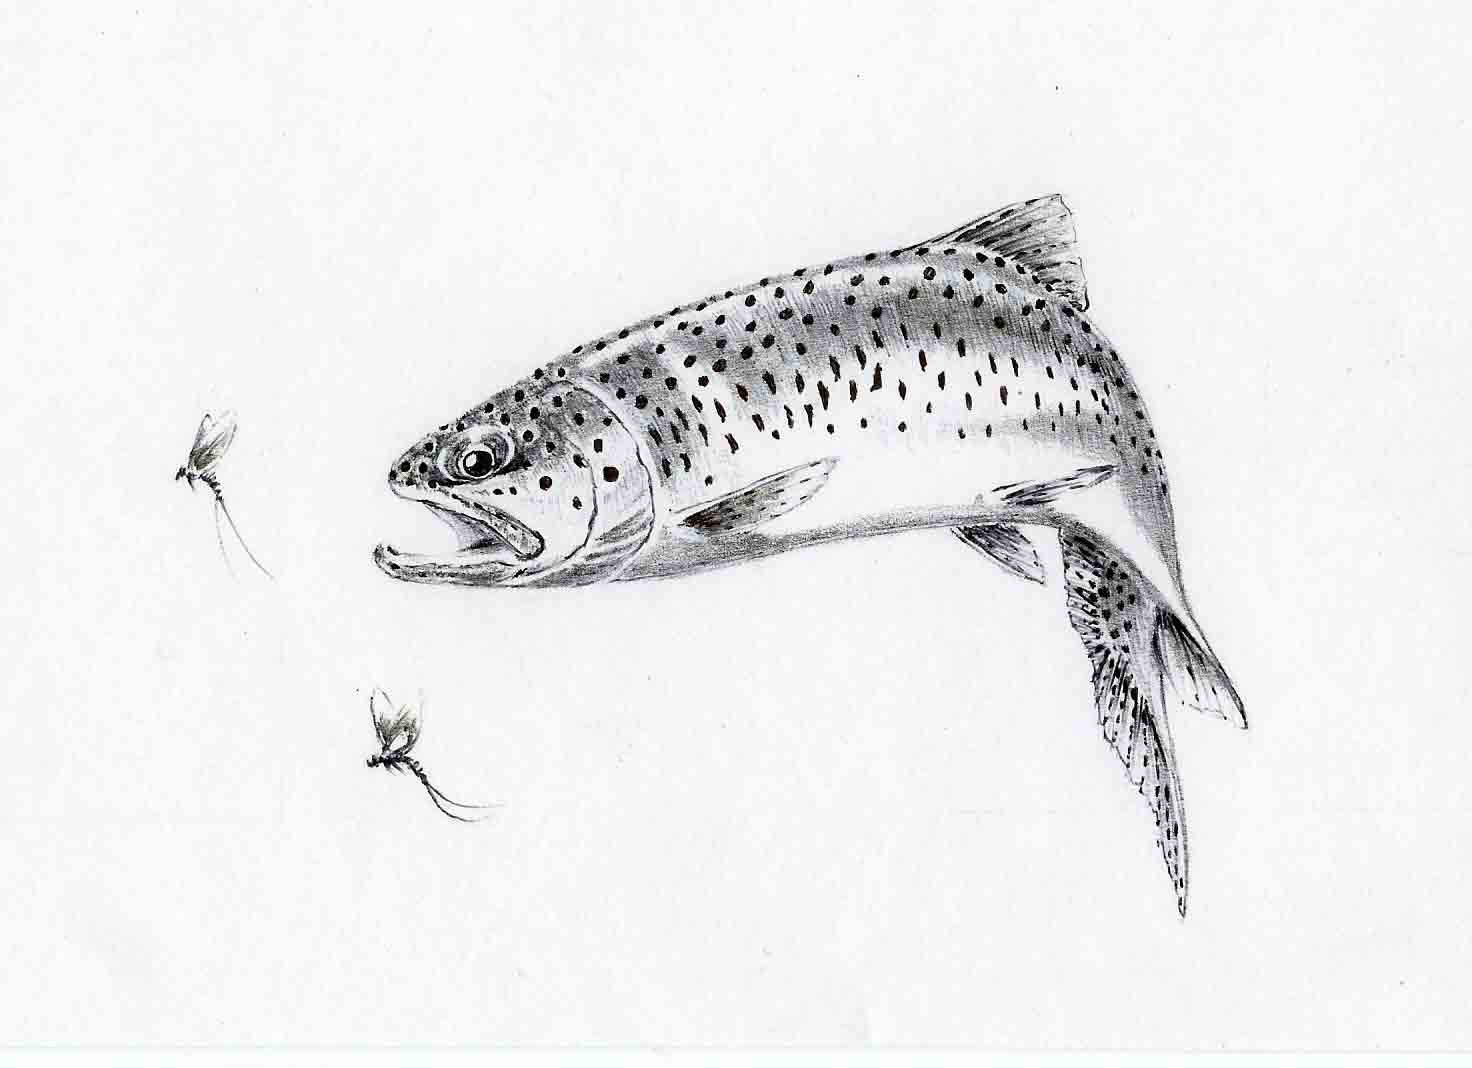 Fly fishing fly drawings - photo#24